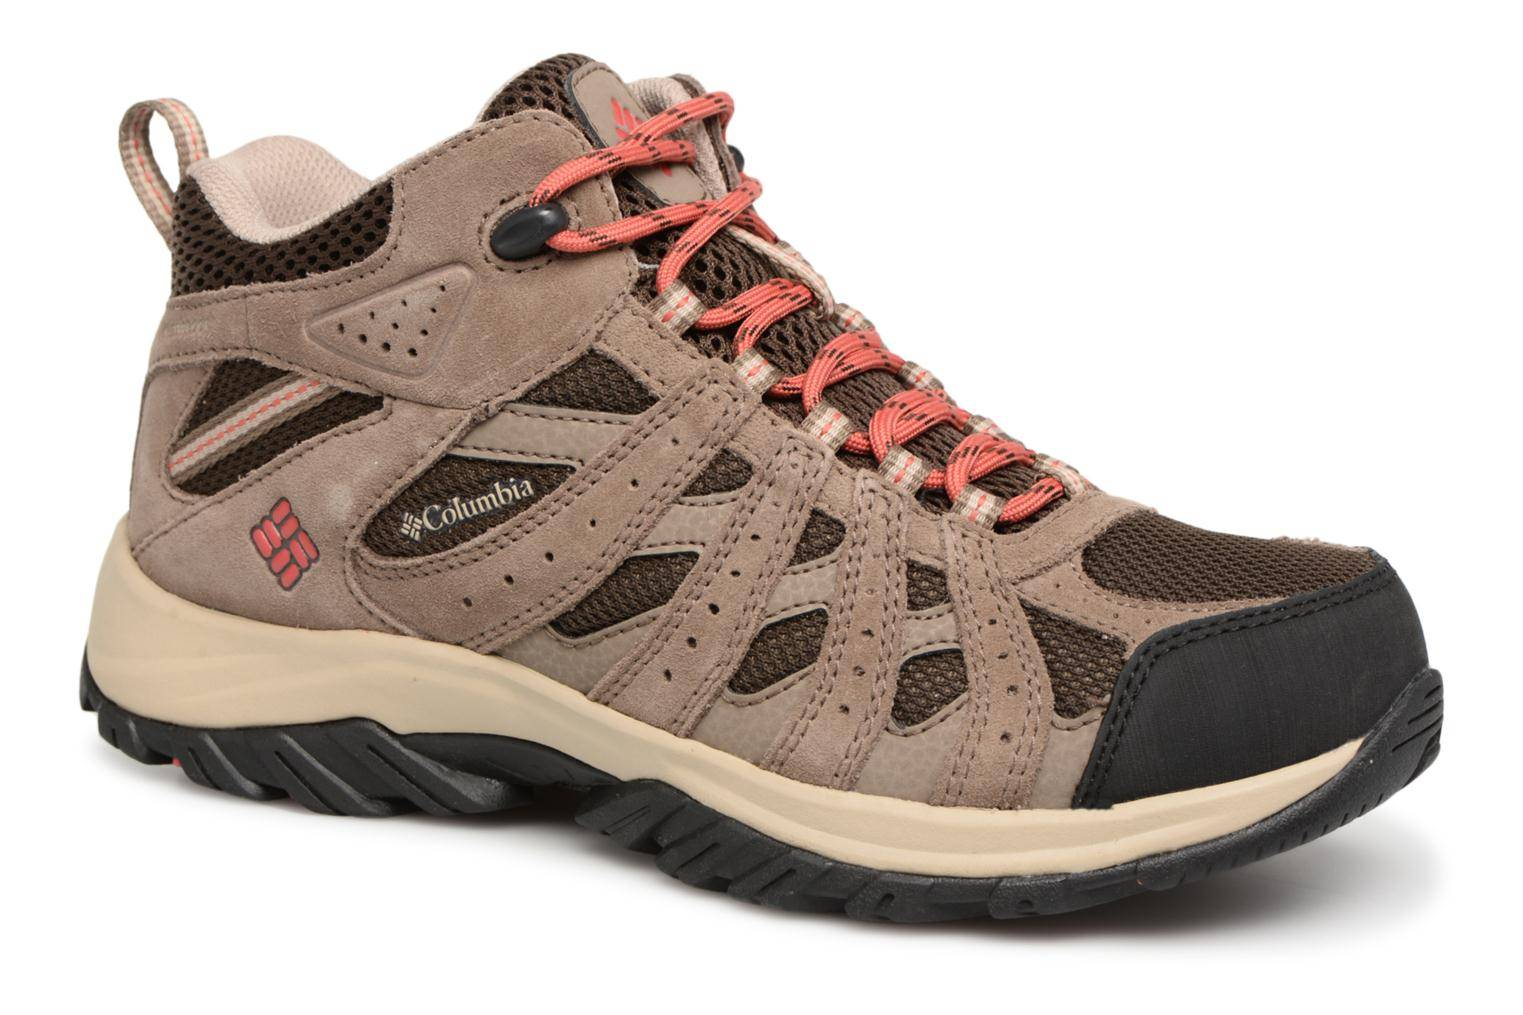 Columbia Chaussures de sport - Columbia - Canyon Point Mid Waterproof W